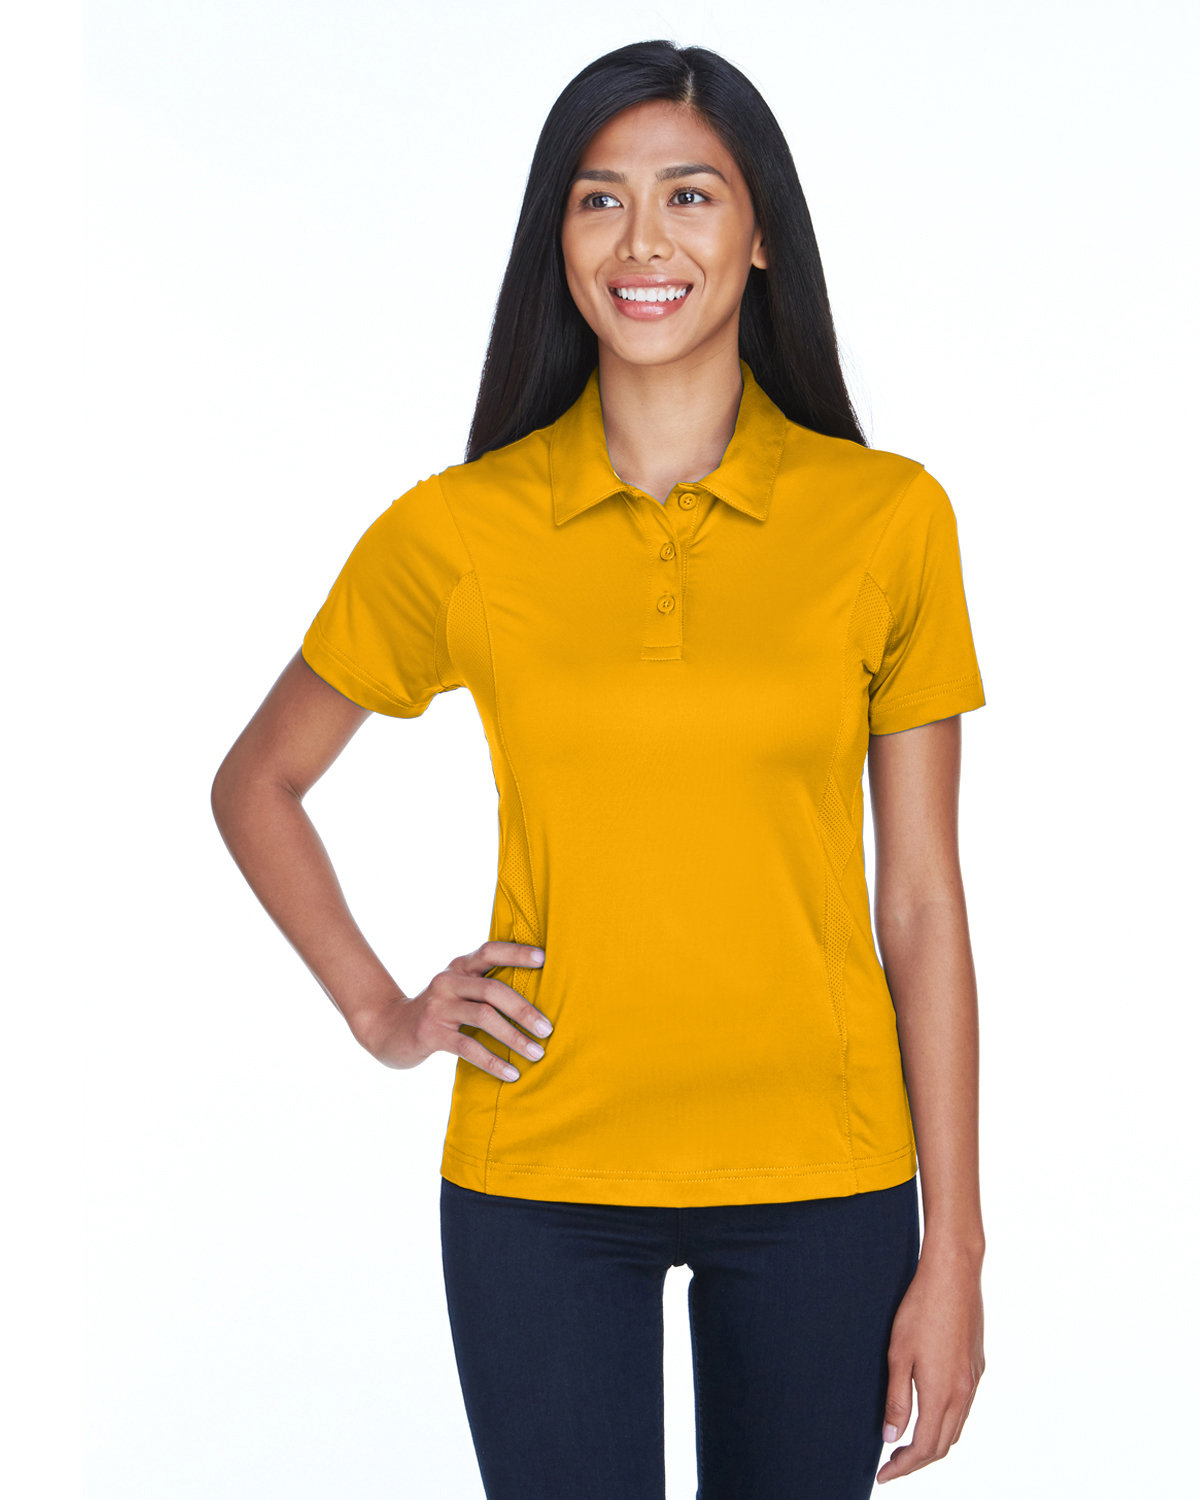 Team 365 Ladies' Charger Performance Polo SP ATHLETIC GOLD